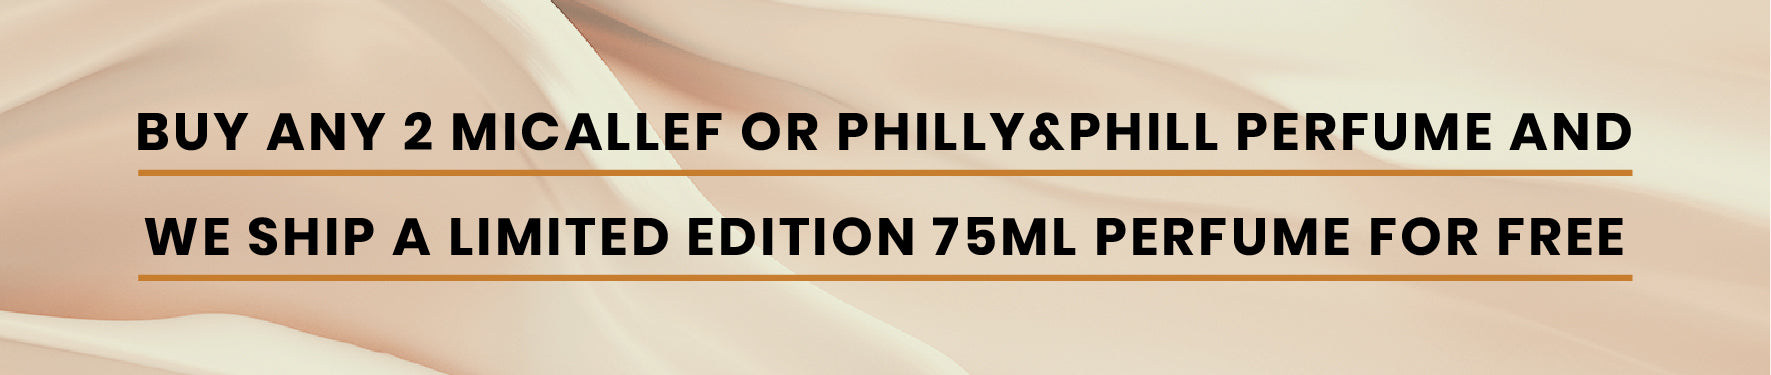 Buy any 2 micallef or philly&Phill perfume and get a limited edition 75ml perfume for free